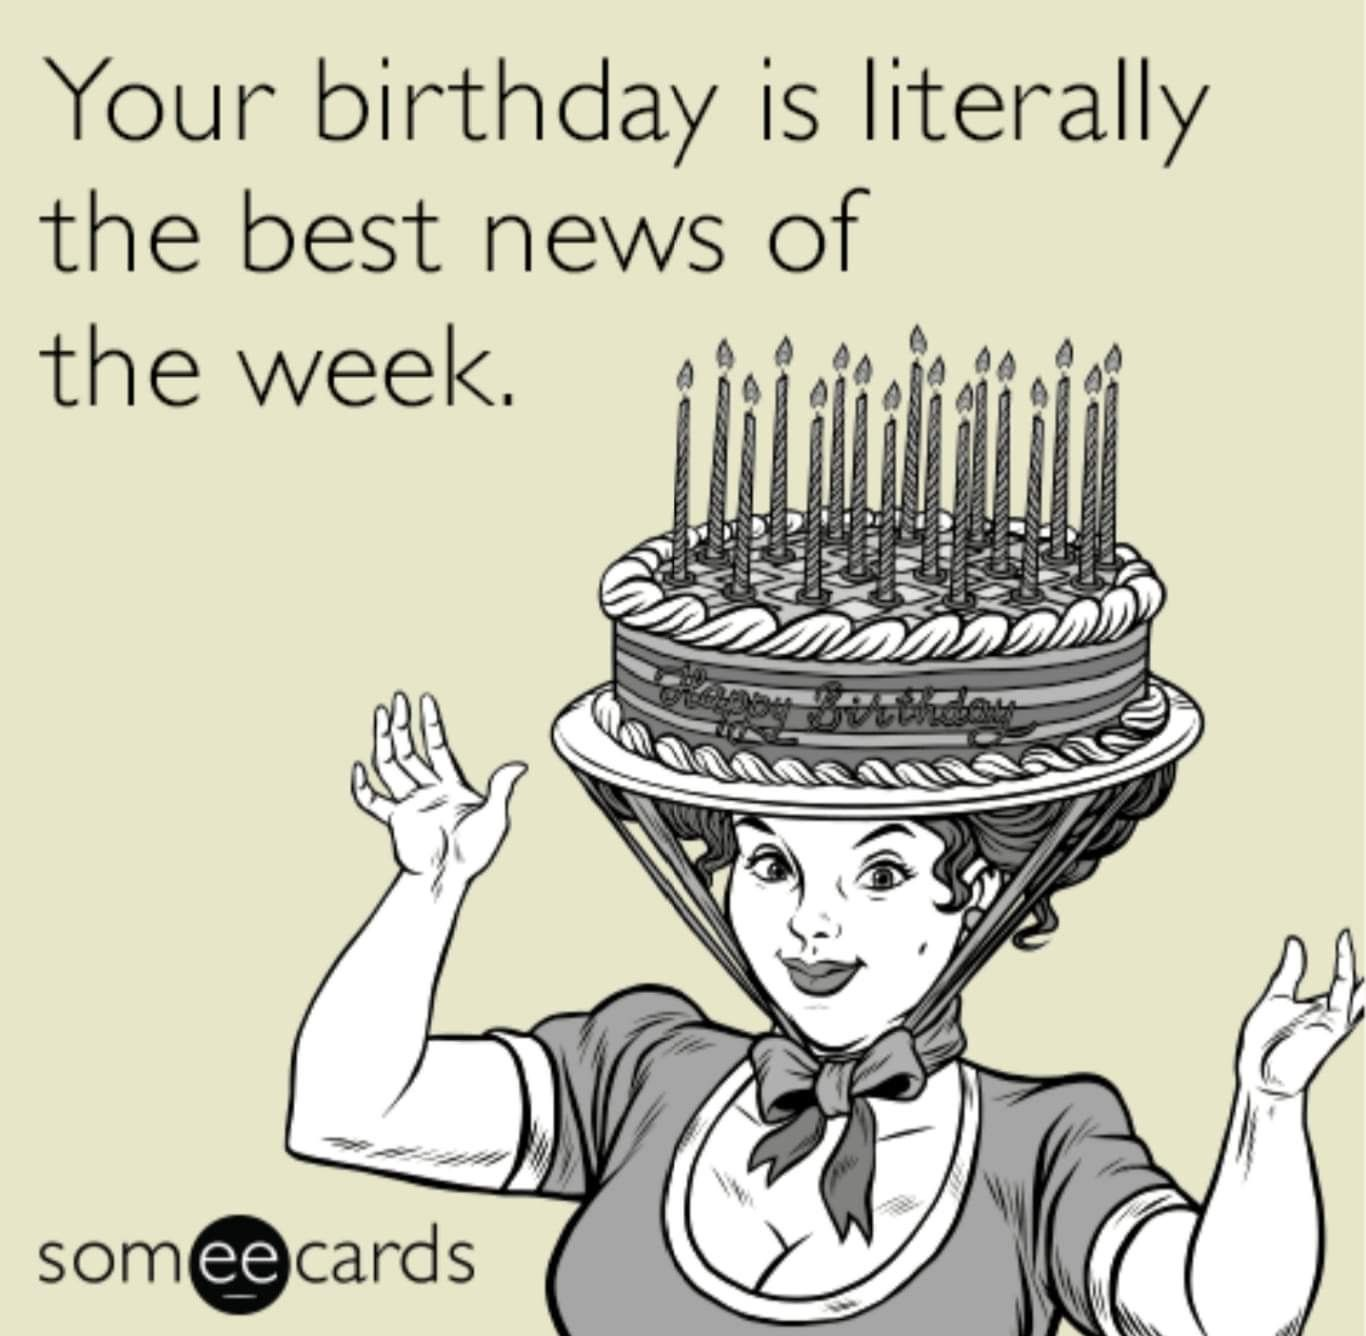 Pin By Si De Luca On Birthday Greetings Birthday Memes For Him Birthday Meme Birthday Memes For Her